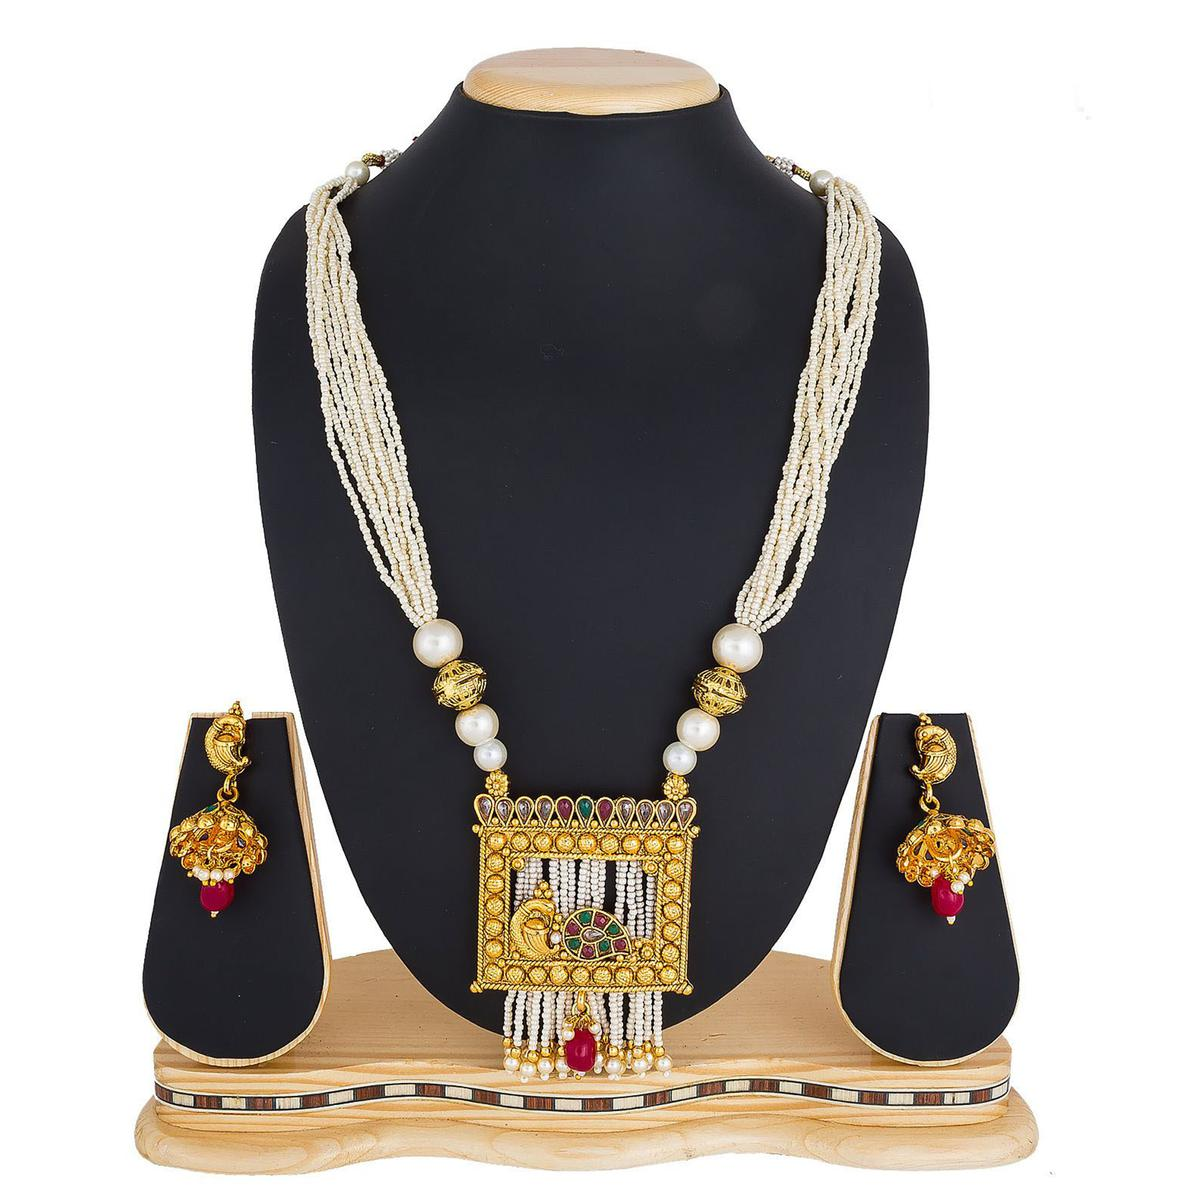 Eye-catching Golden Colored Stone Work Mix Metal Necklace Set